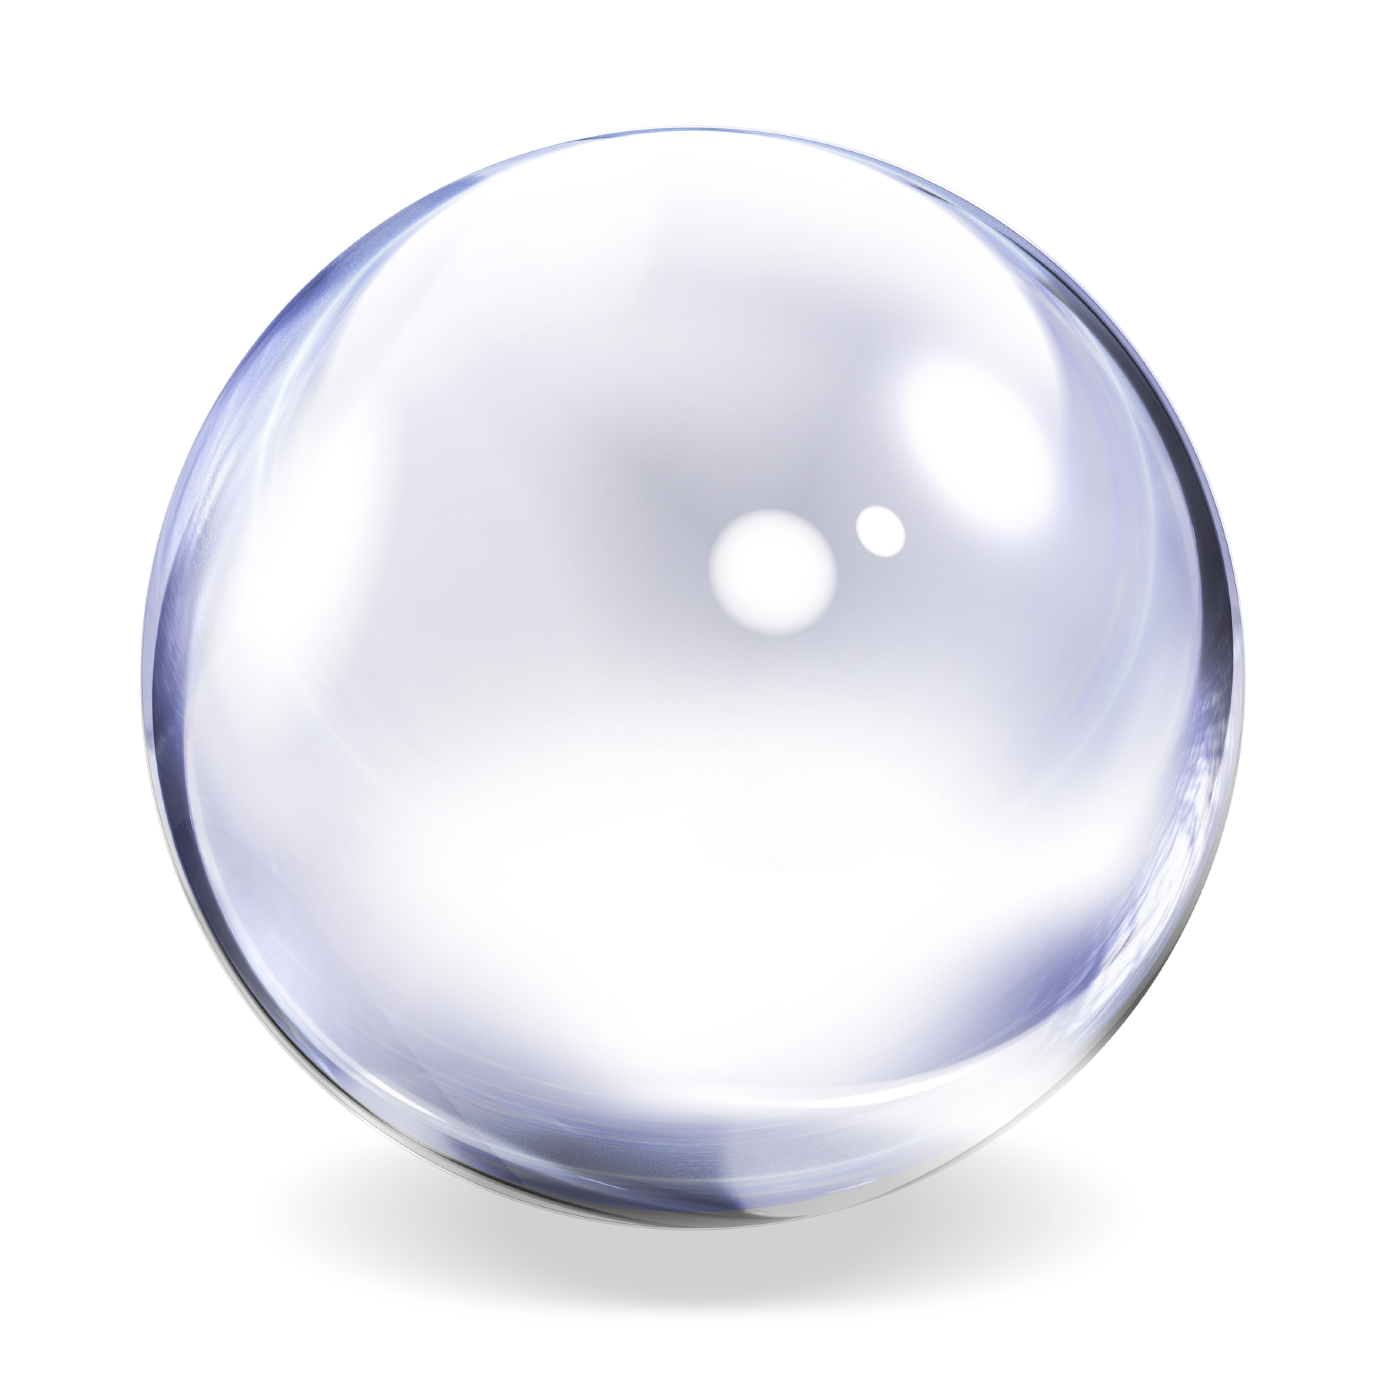 Bubble HD Wallpapers Backgrou